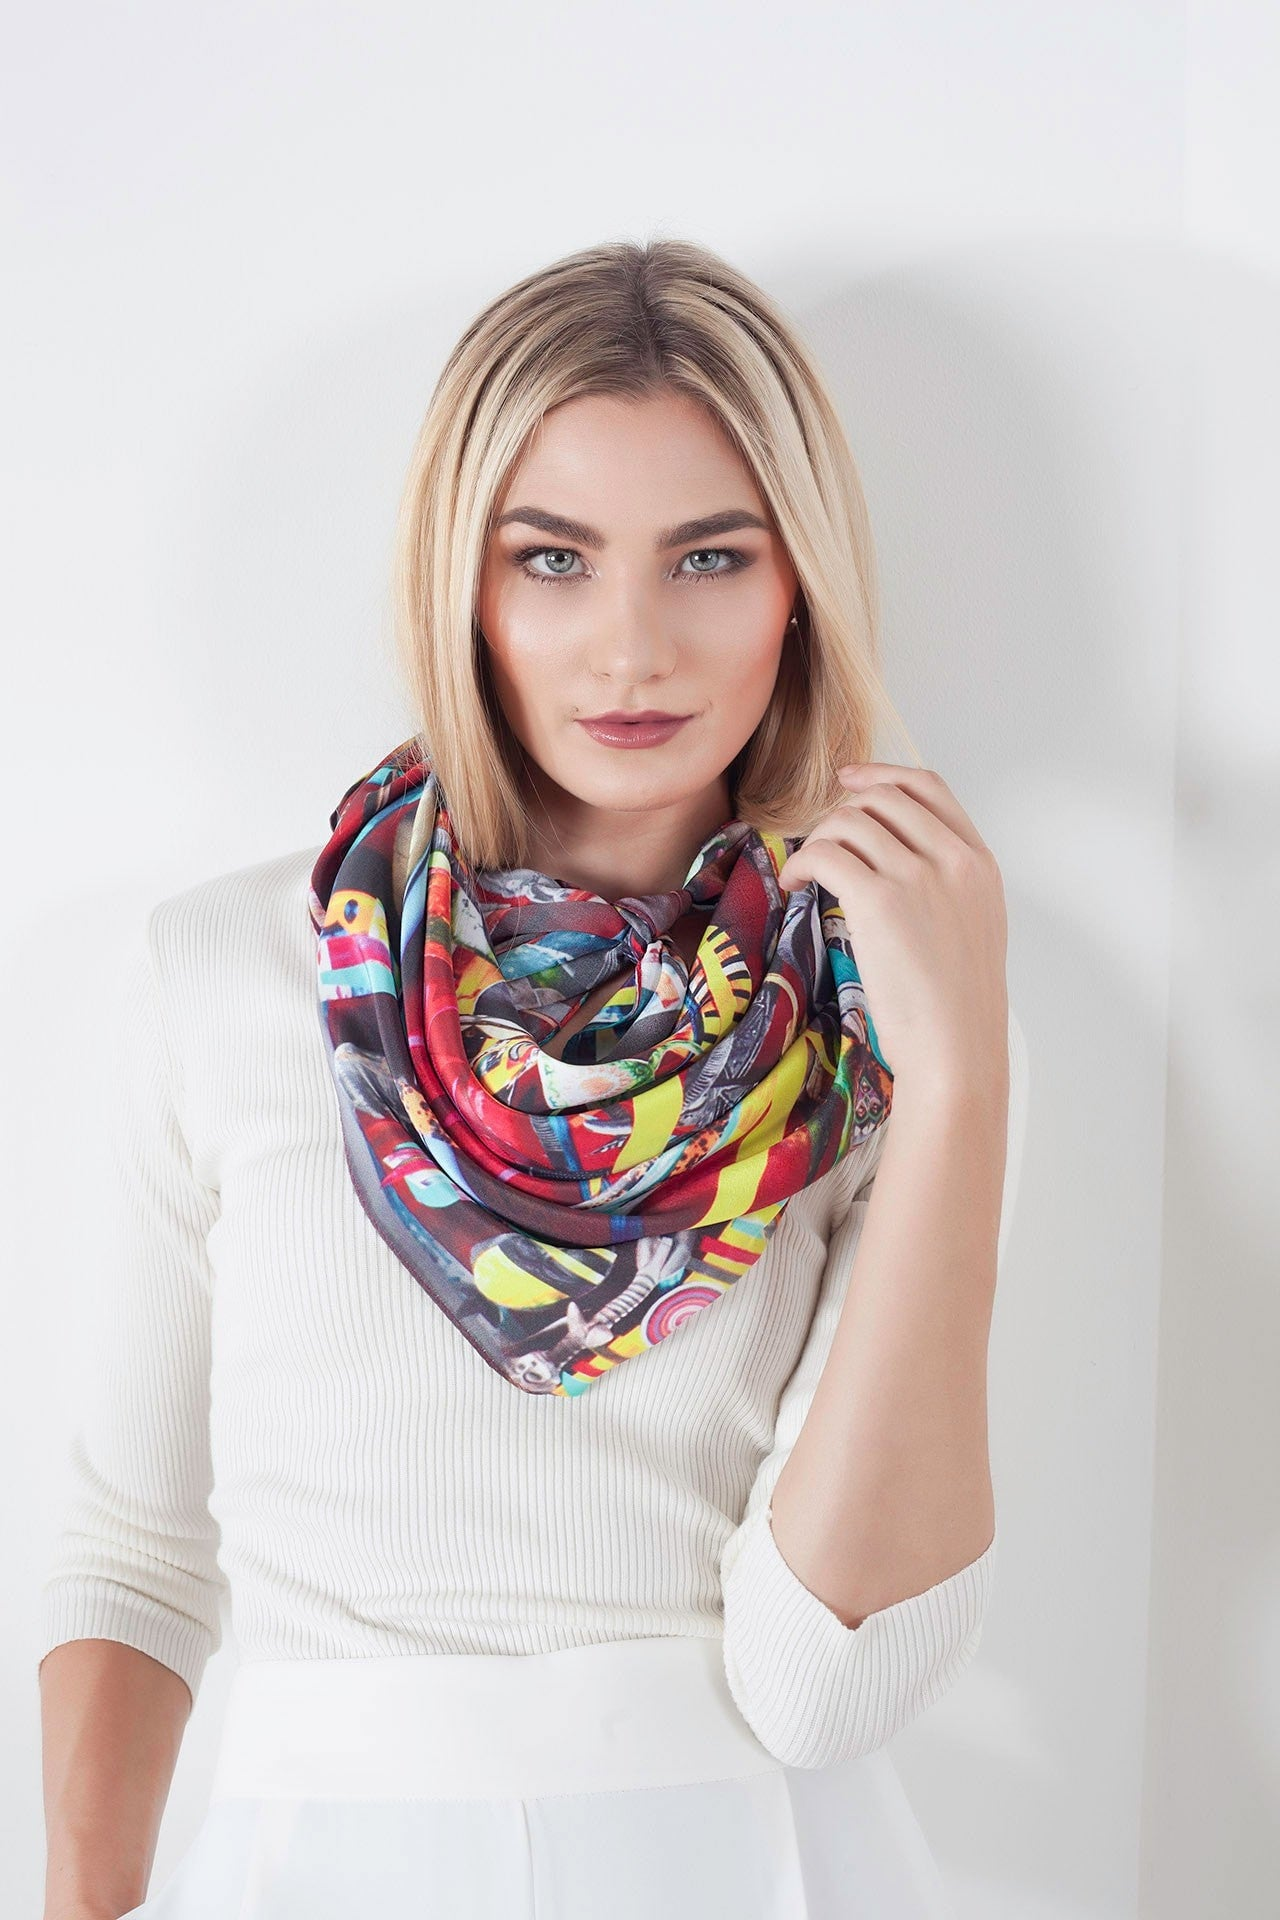 Model wearing a magnificent 100% silk uniquely designed scarf. This wearable art piece was designed in collaboration with Pepe Mar.